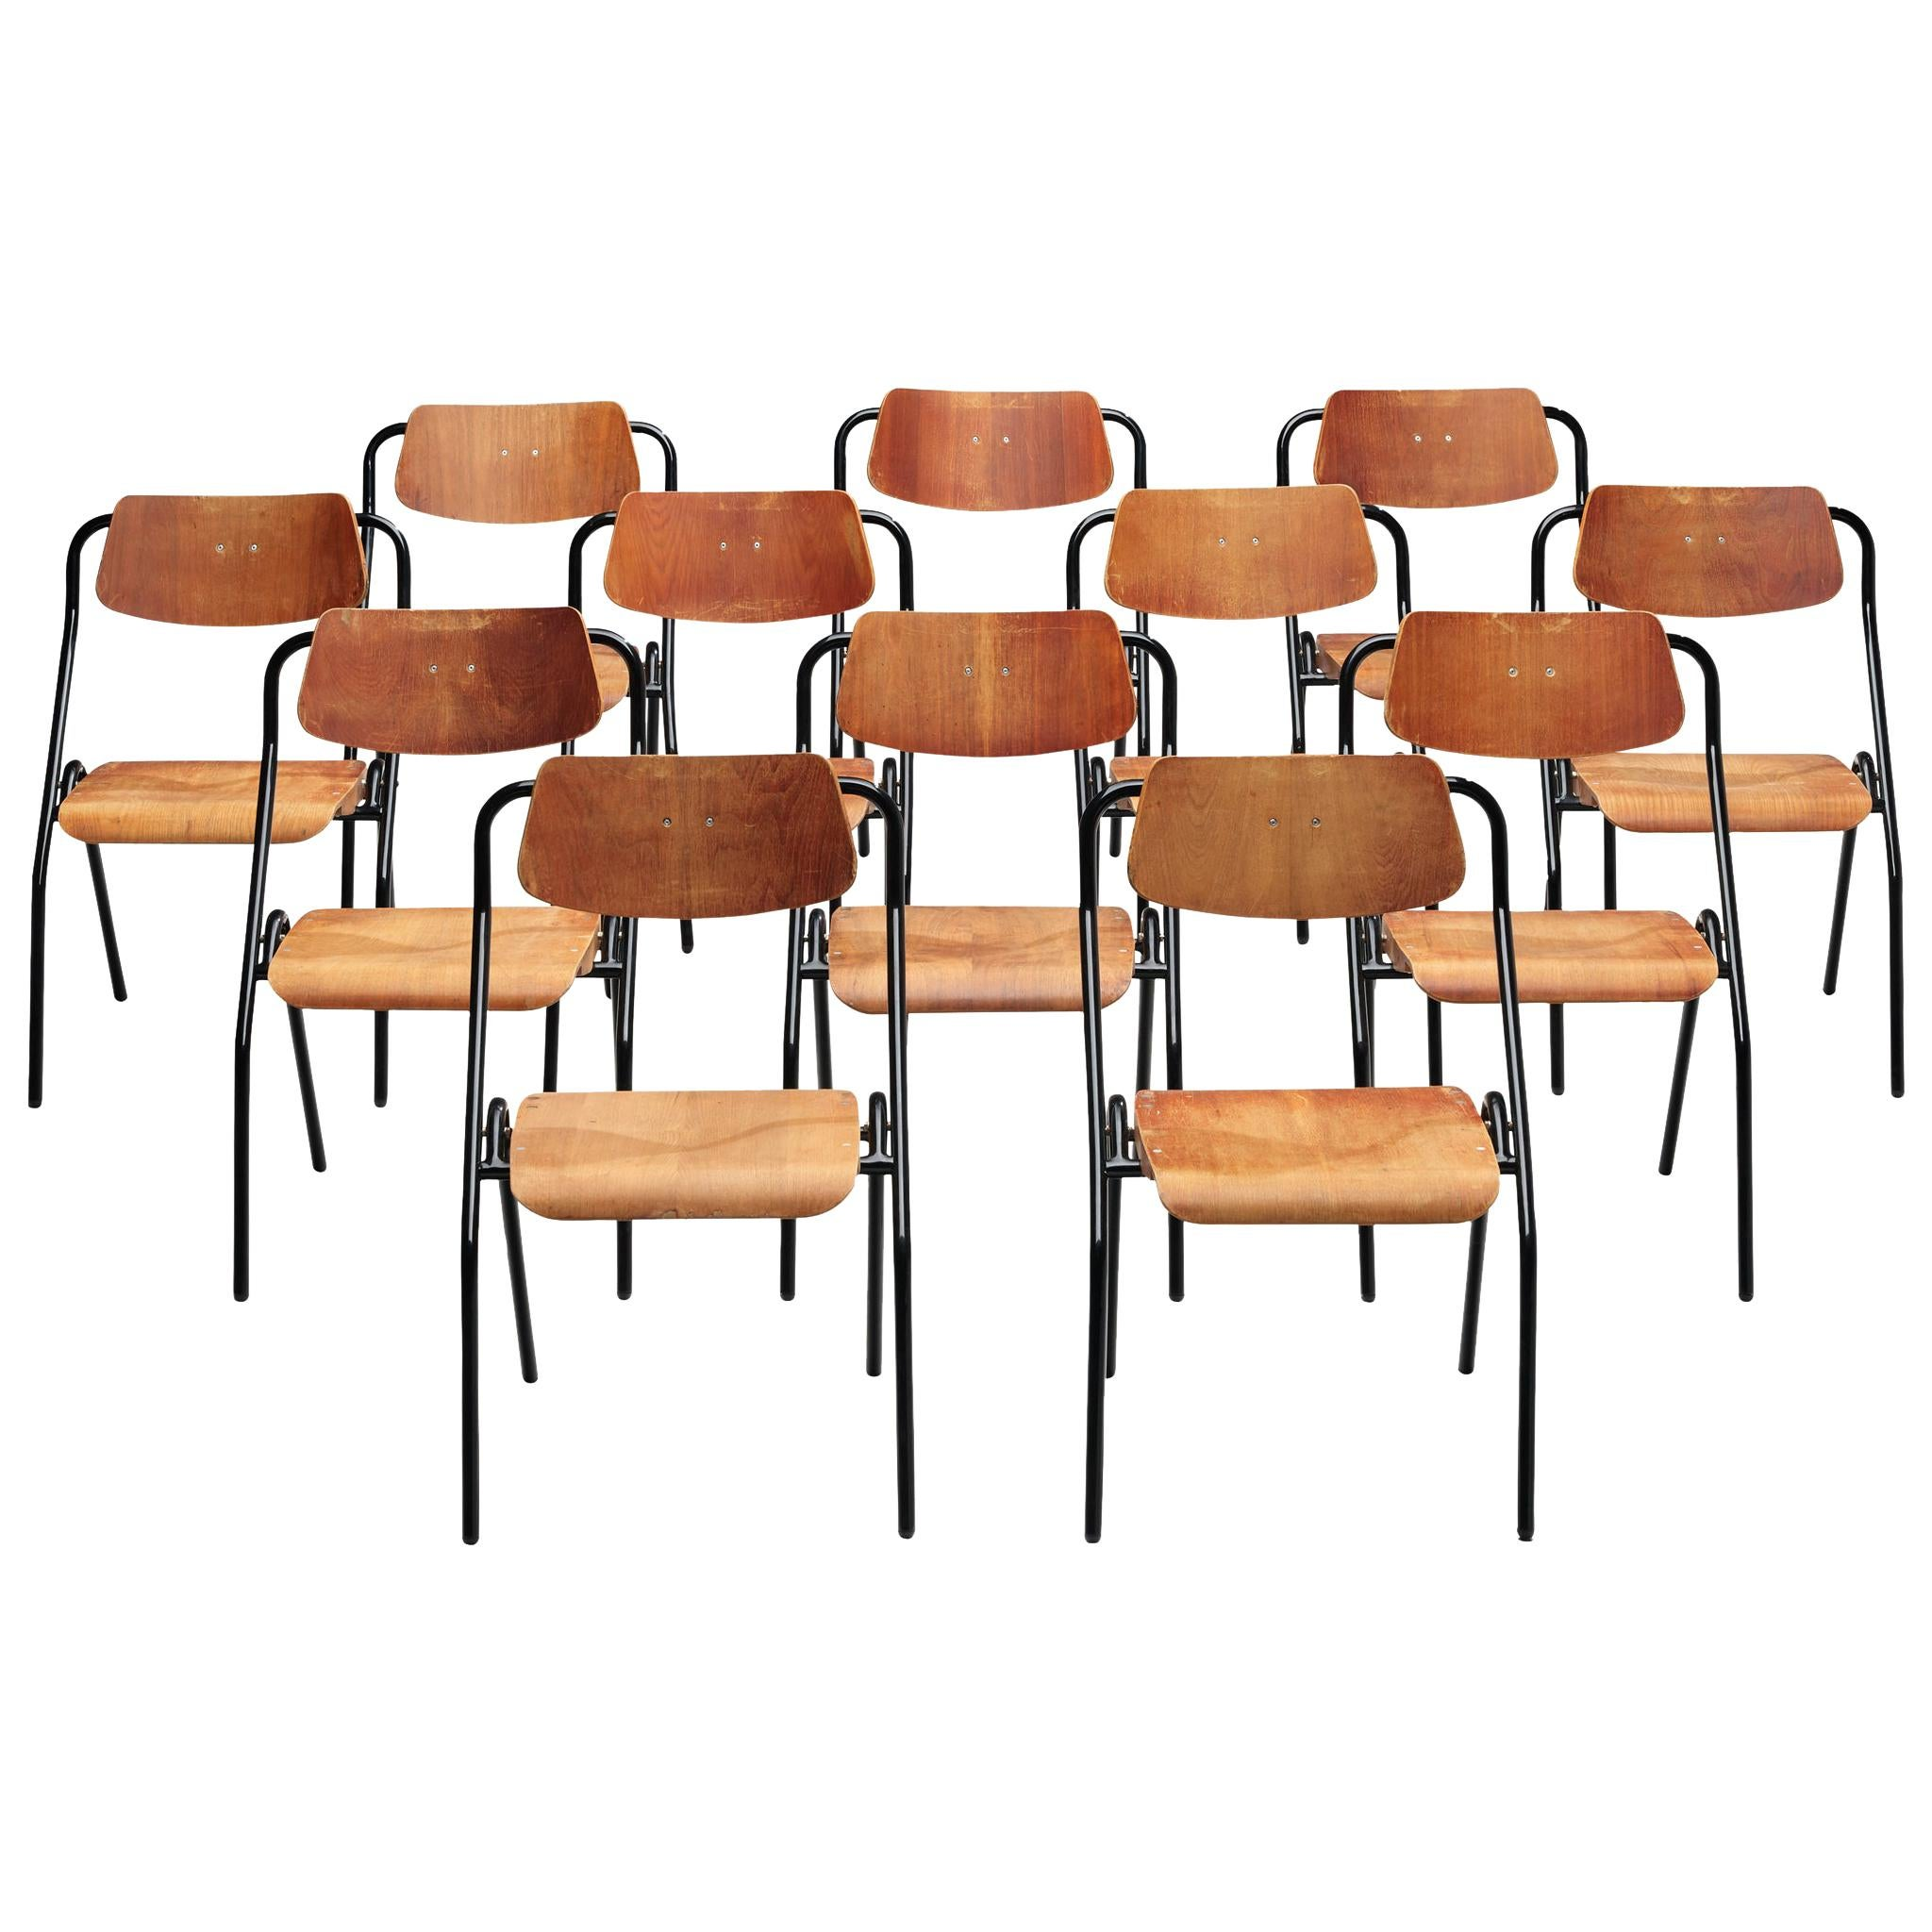 Large Set of Dutch Chairs with Black Tubular Frame